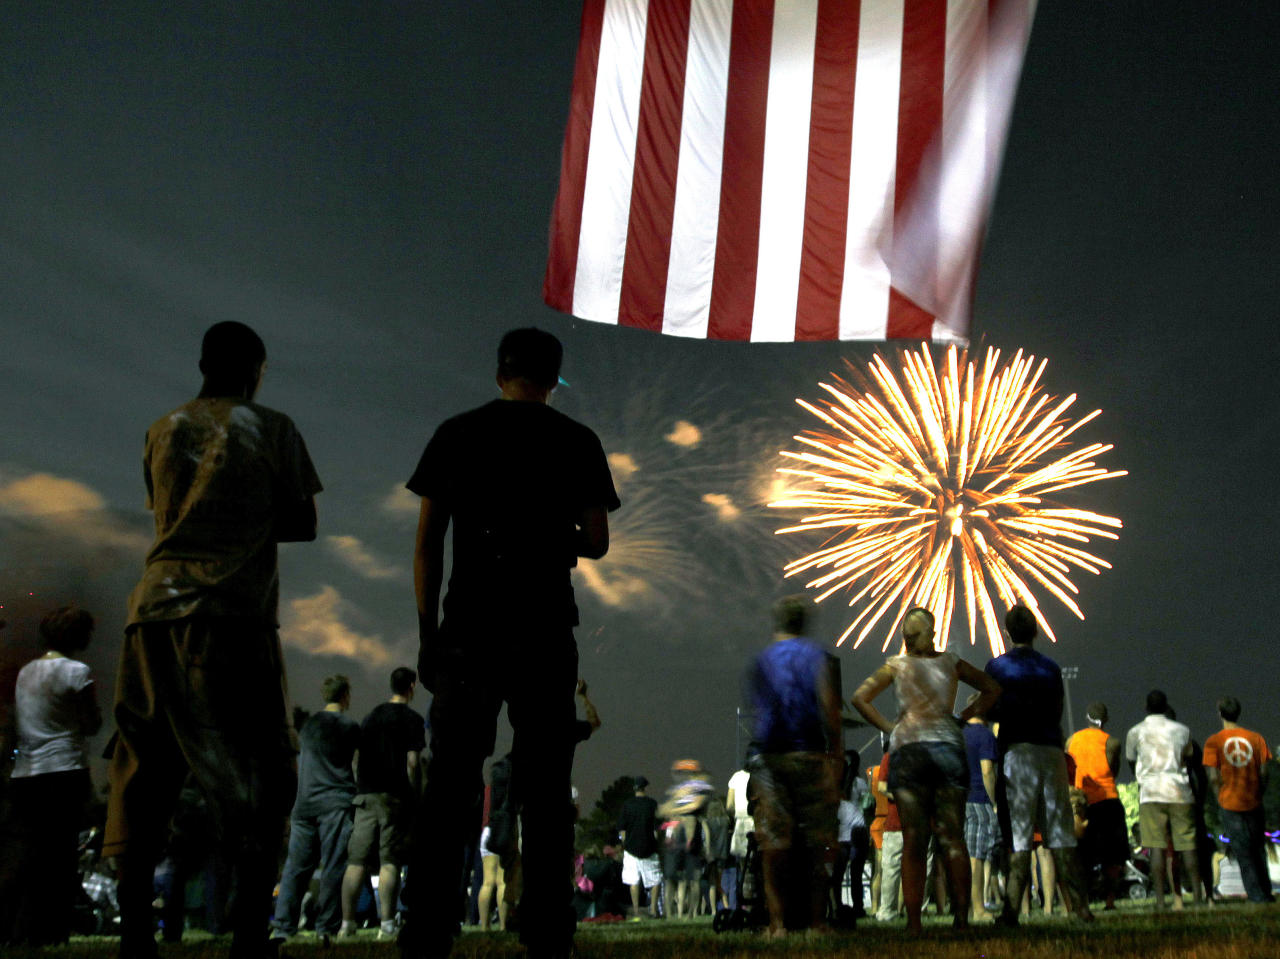 Spectators watch fireworks streak across the sky during the Fanfare and Fireworks celebration at the University of Florida on Tuesday, July 3, 2012, in Gainesville, Fla. (AP Photo/The Gainesville Sun, Matt Stamey)